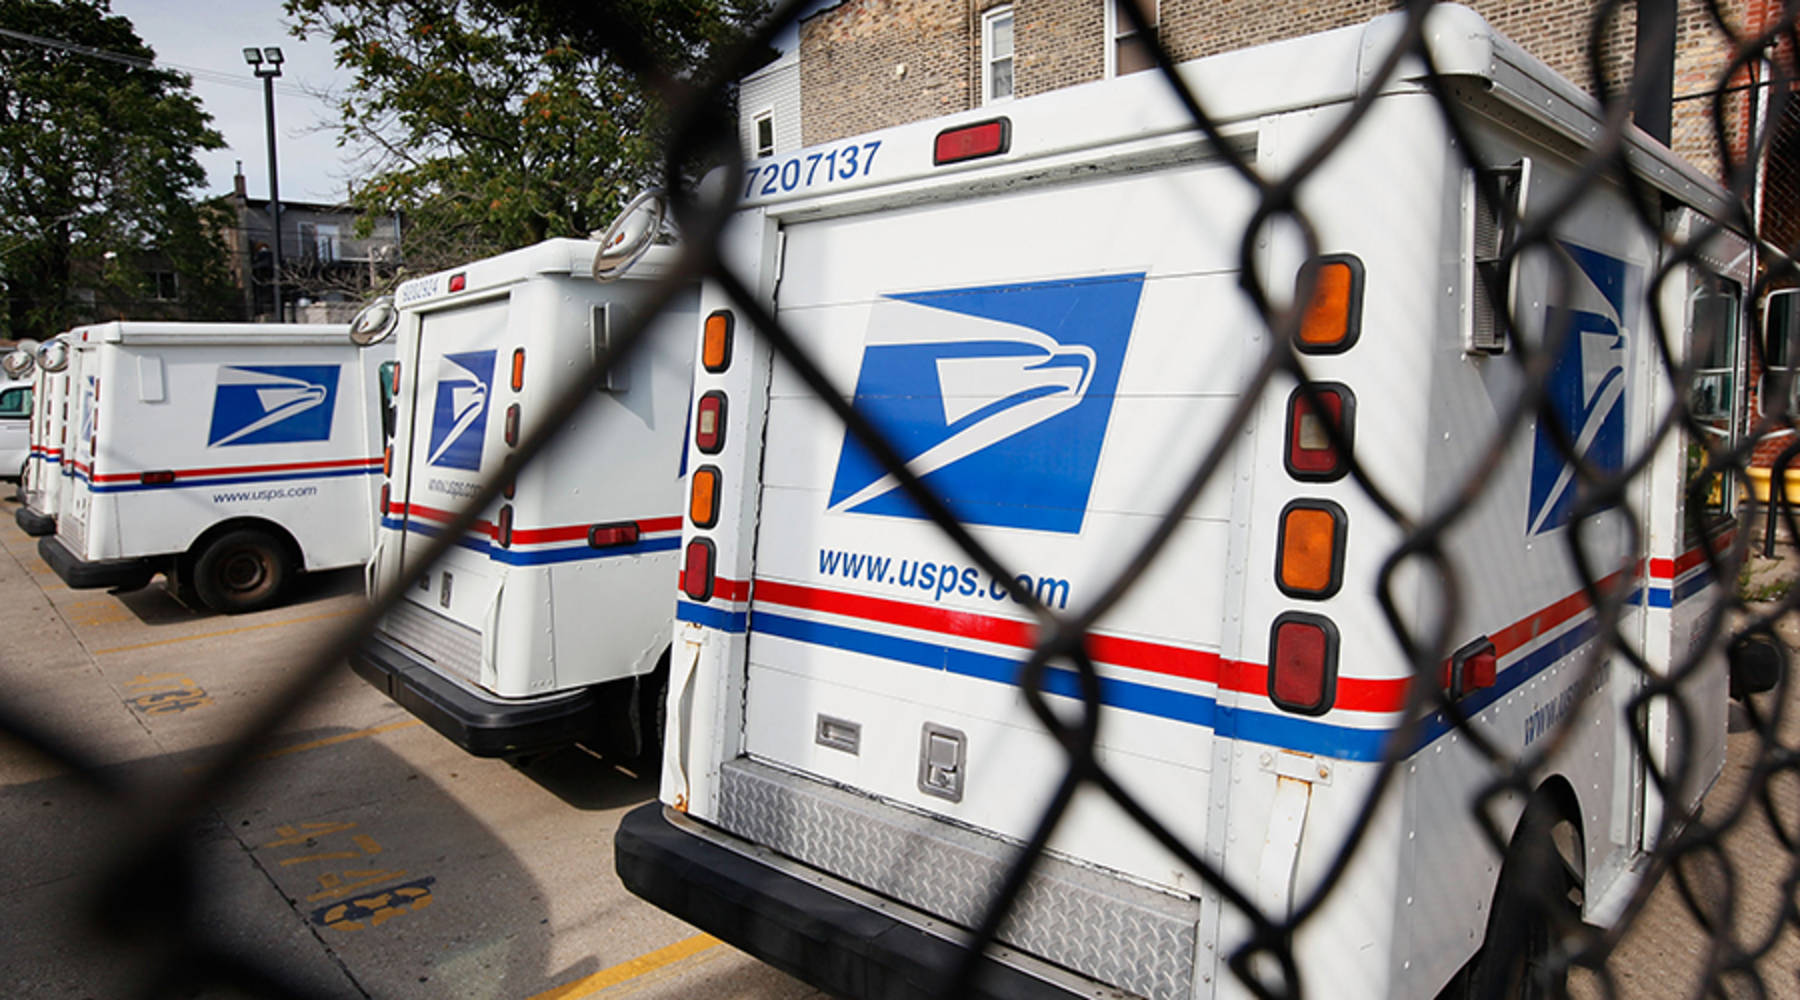 The post office may be losing money, but Amazon is not to